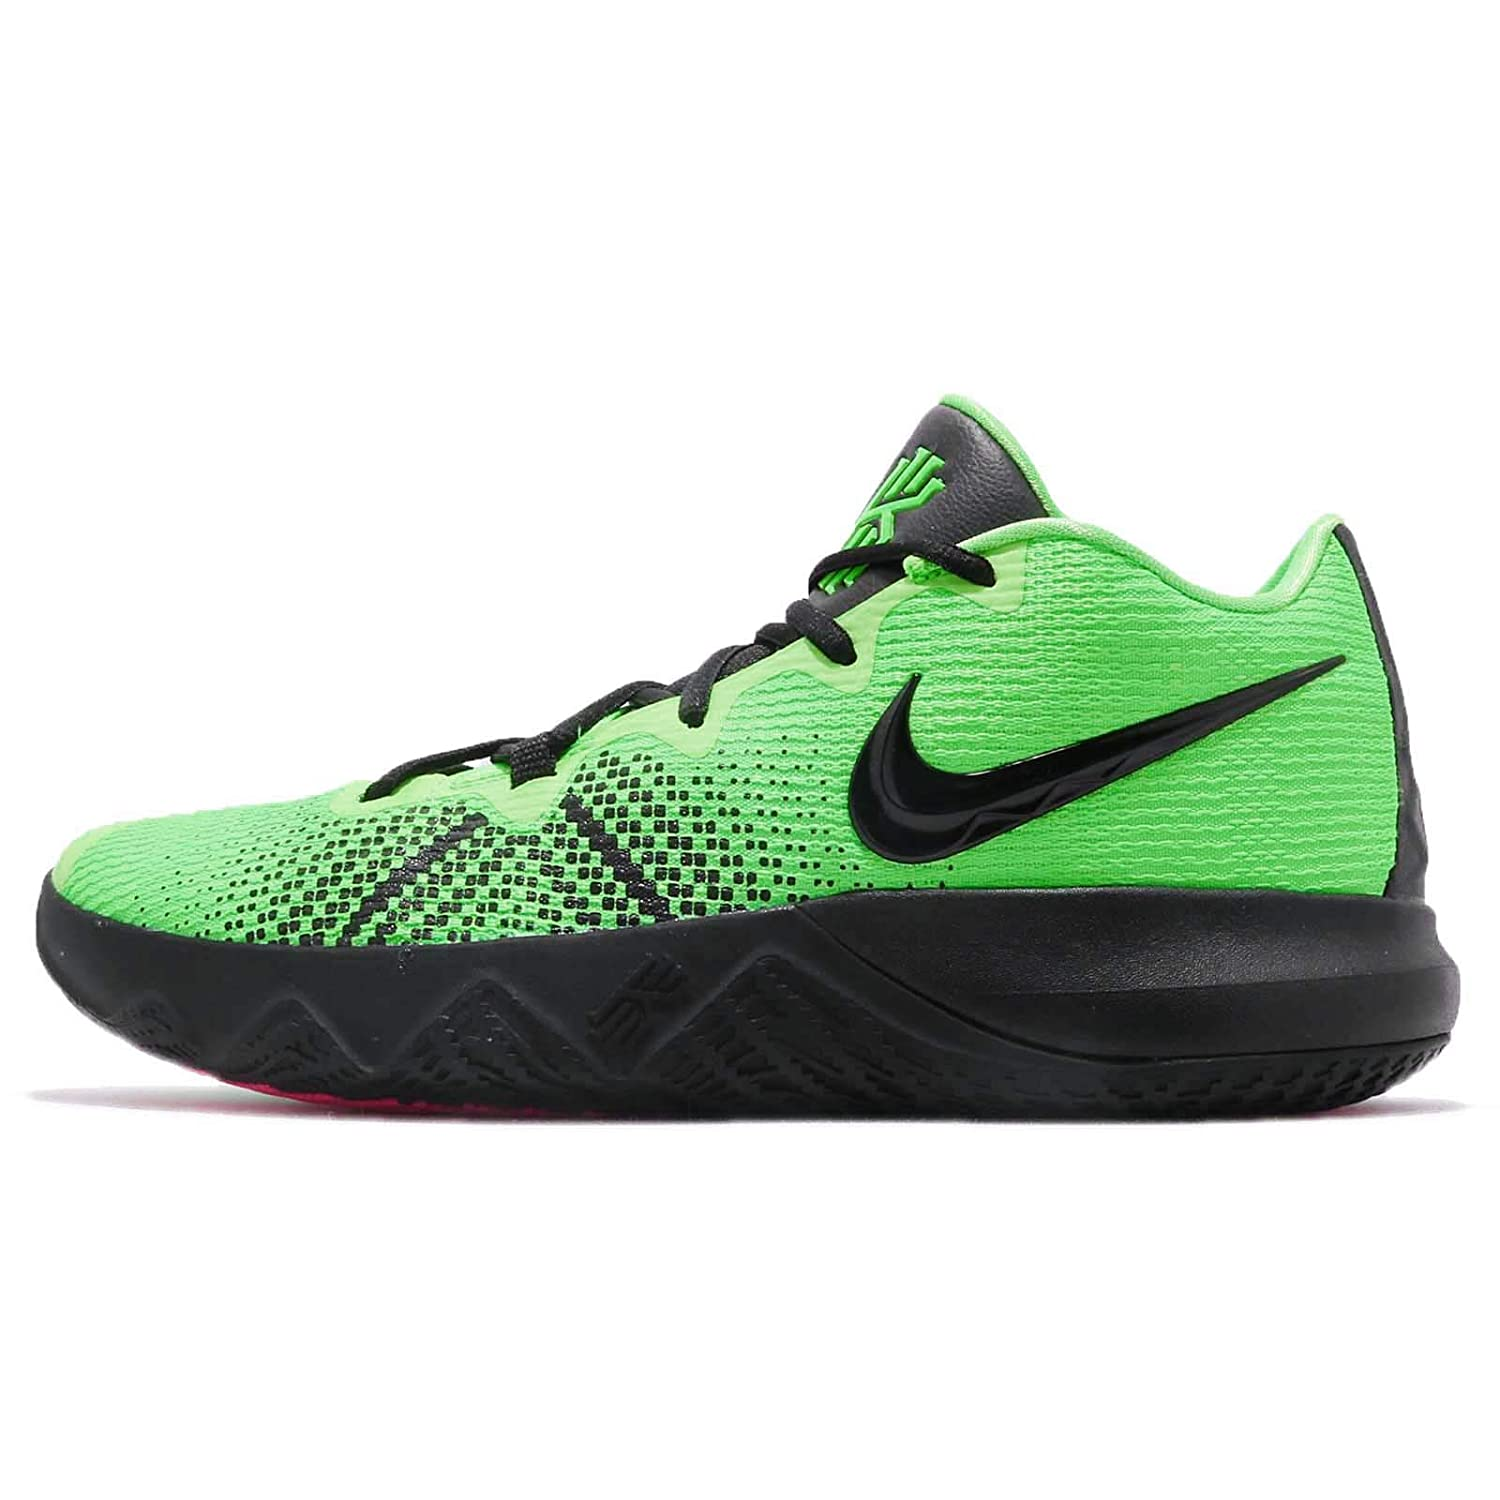 huge discount 507dd 0e053 Amazon.com: Nike Kyrie Flytrap EP [AJ1935-300] Men ...